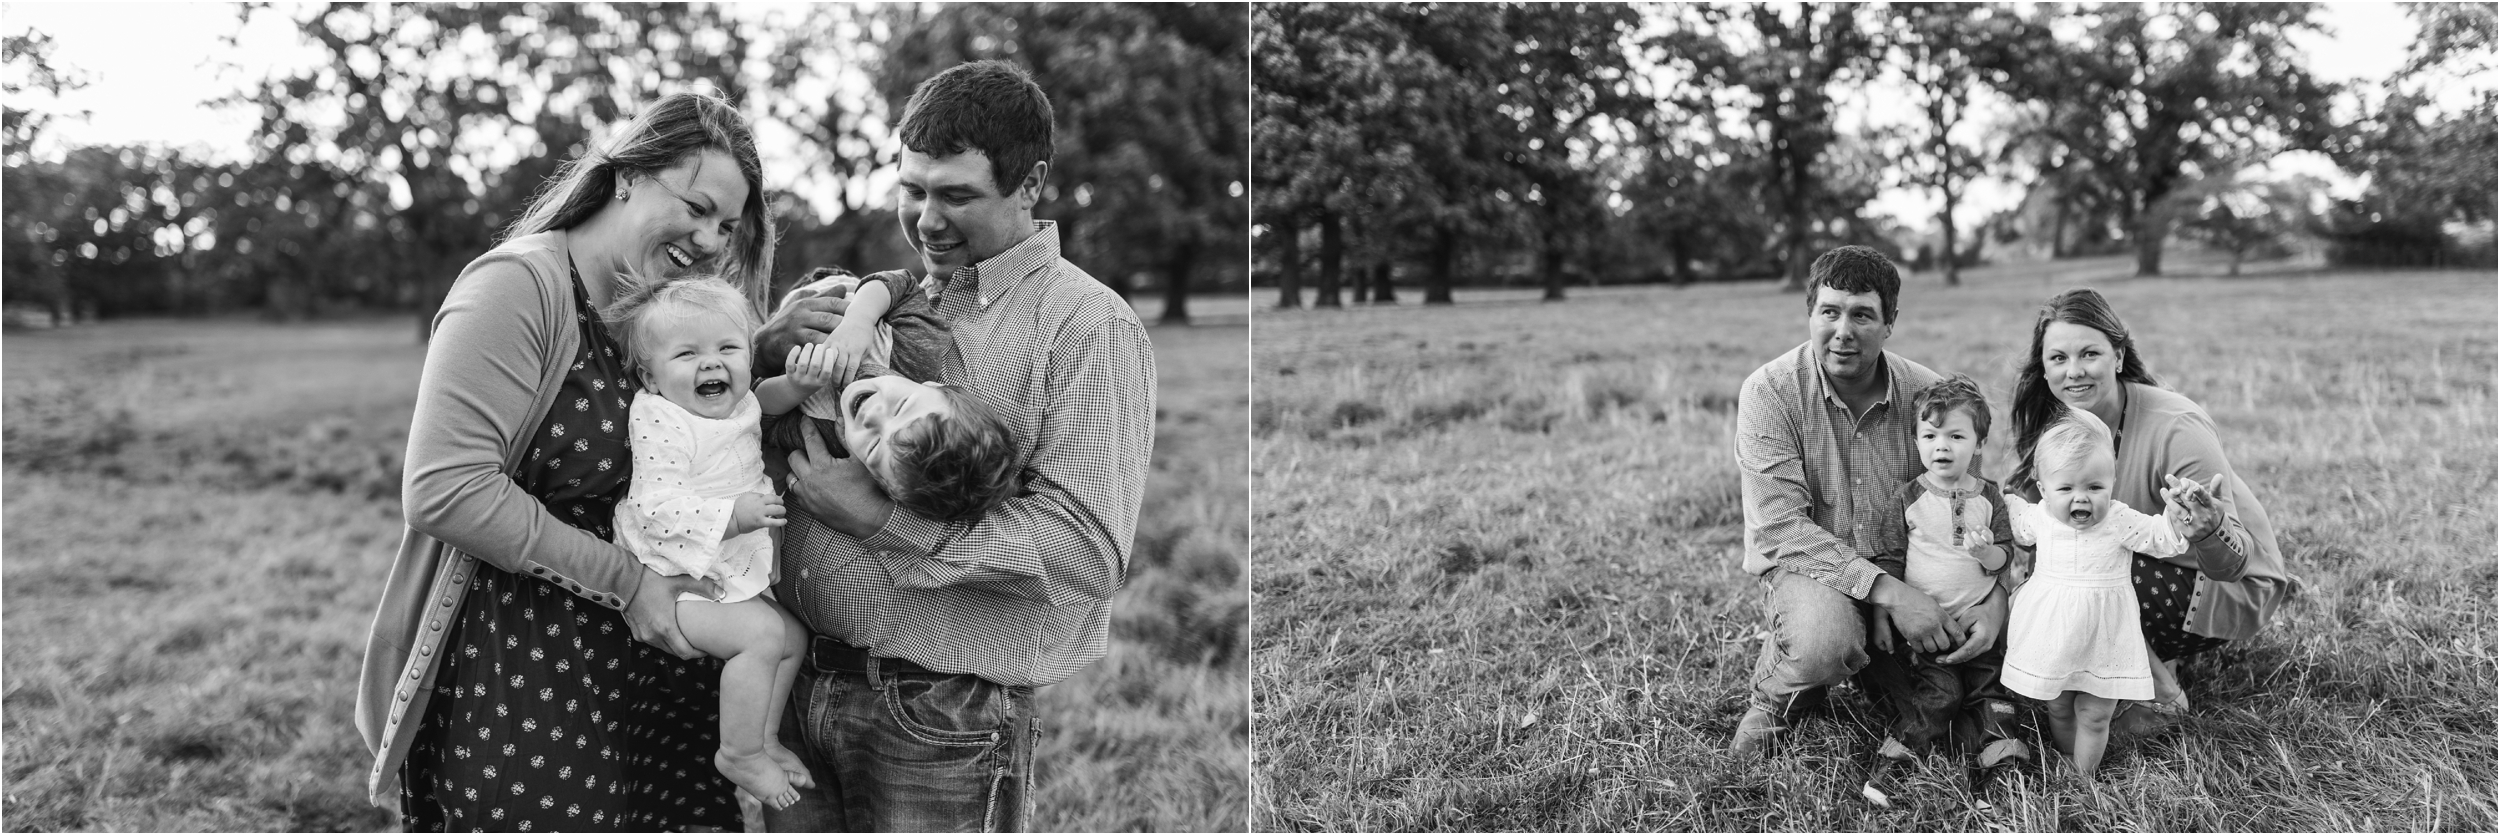 Farm Family Session_Midwest Wedding Photographer_Stephanie Lynn Photography_0088.jpg